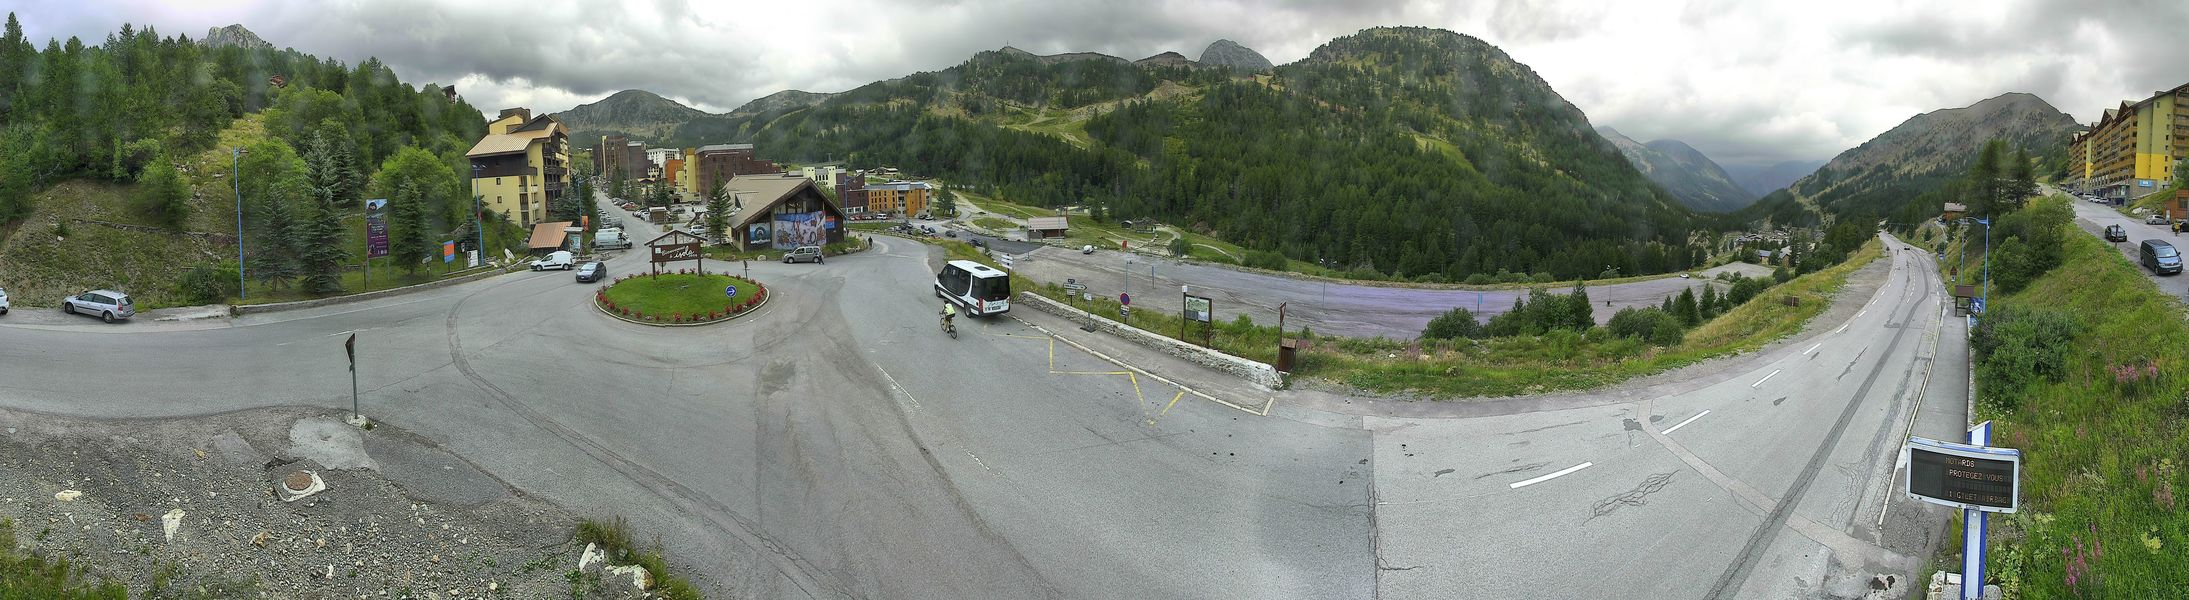 Webcam panoramique du centre station d'Isola 2000